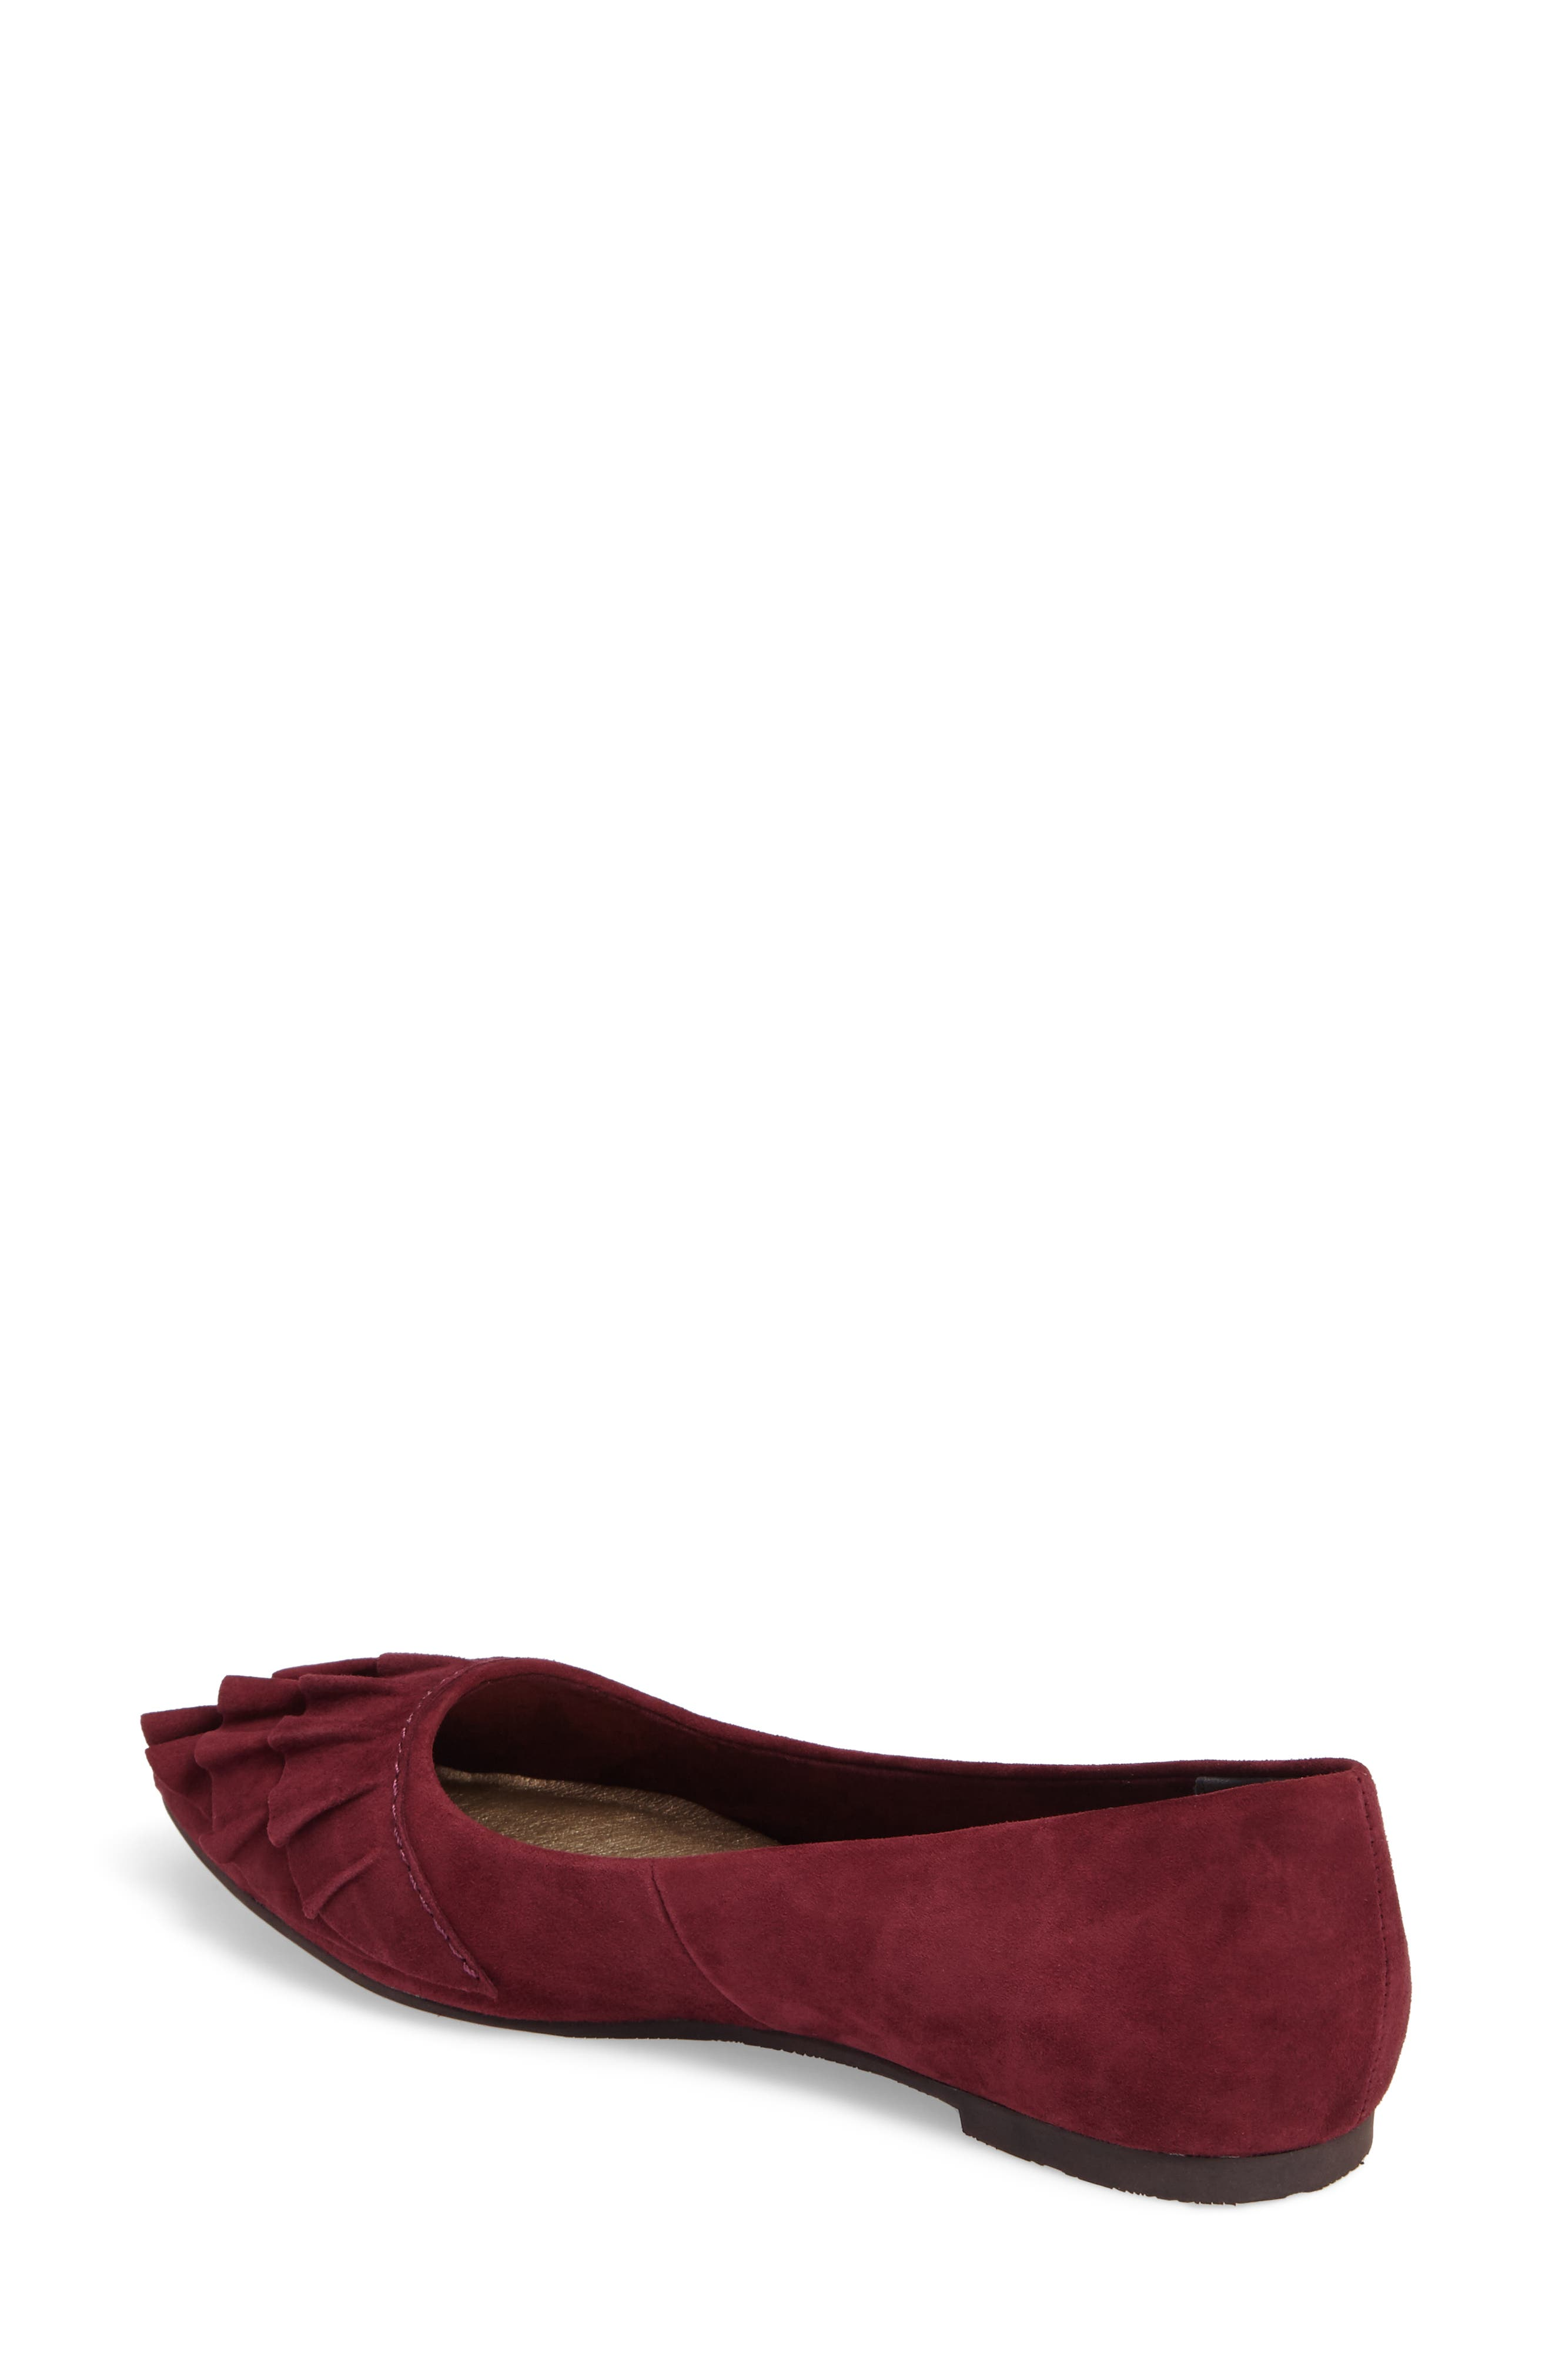 Downstage Pointy Toe Flat,                             Alternate thumbnail 3, color,                             Burgundy Suede